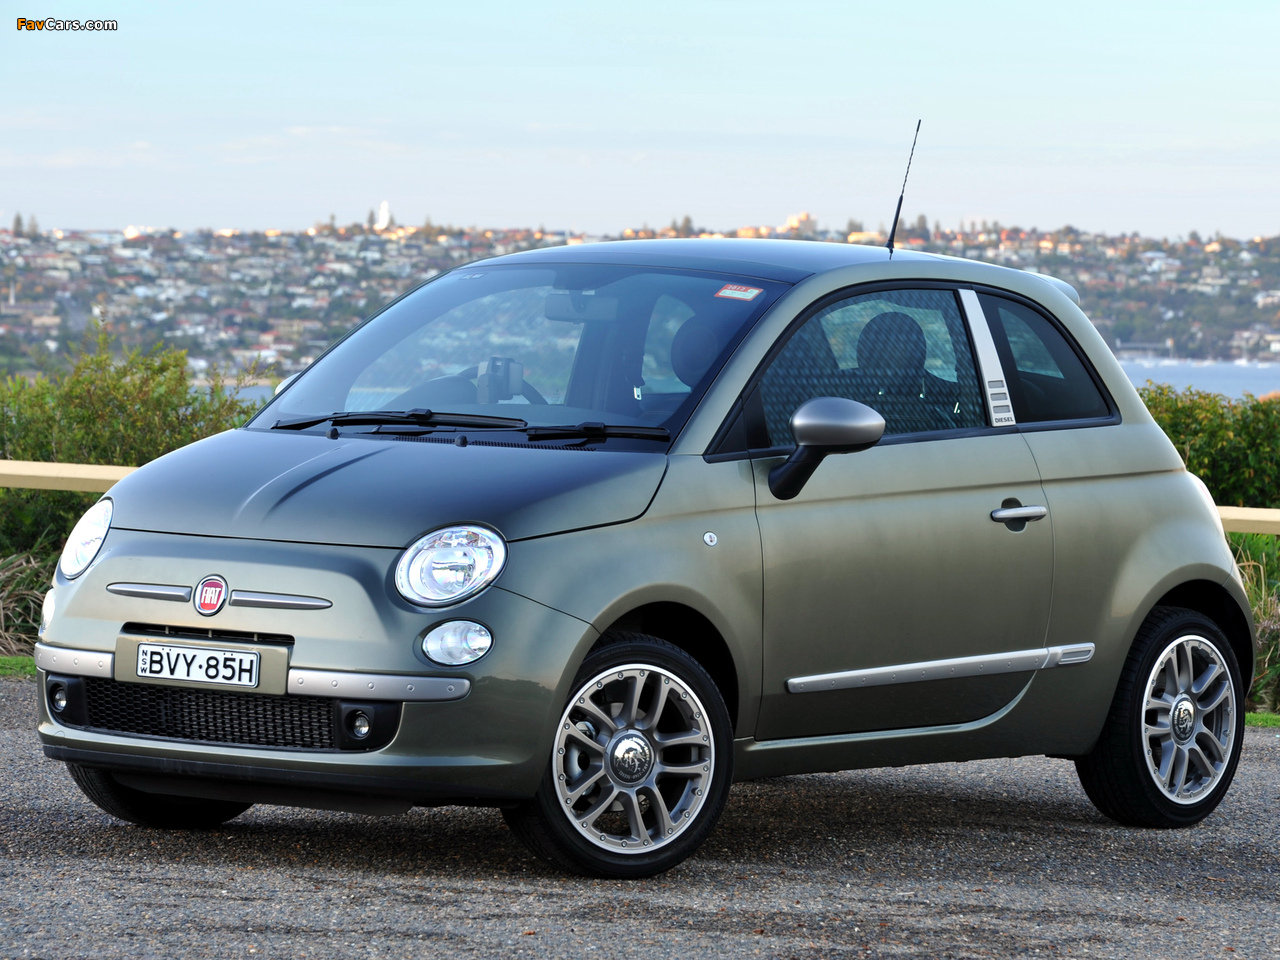 pictures of fiat 500 by diesel au spec 2010 1280x960. Black Bedroom Furniture Sets. Home Design Ideas